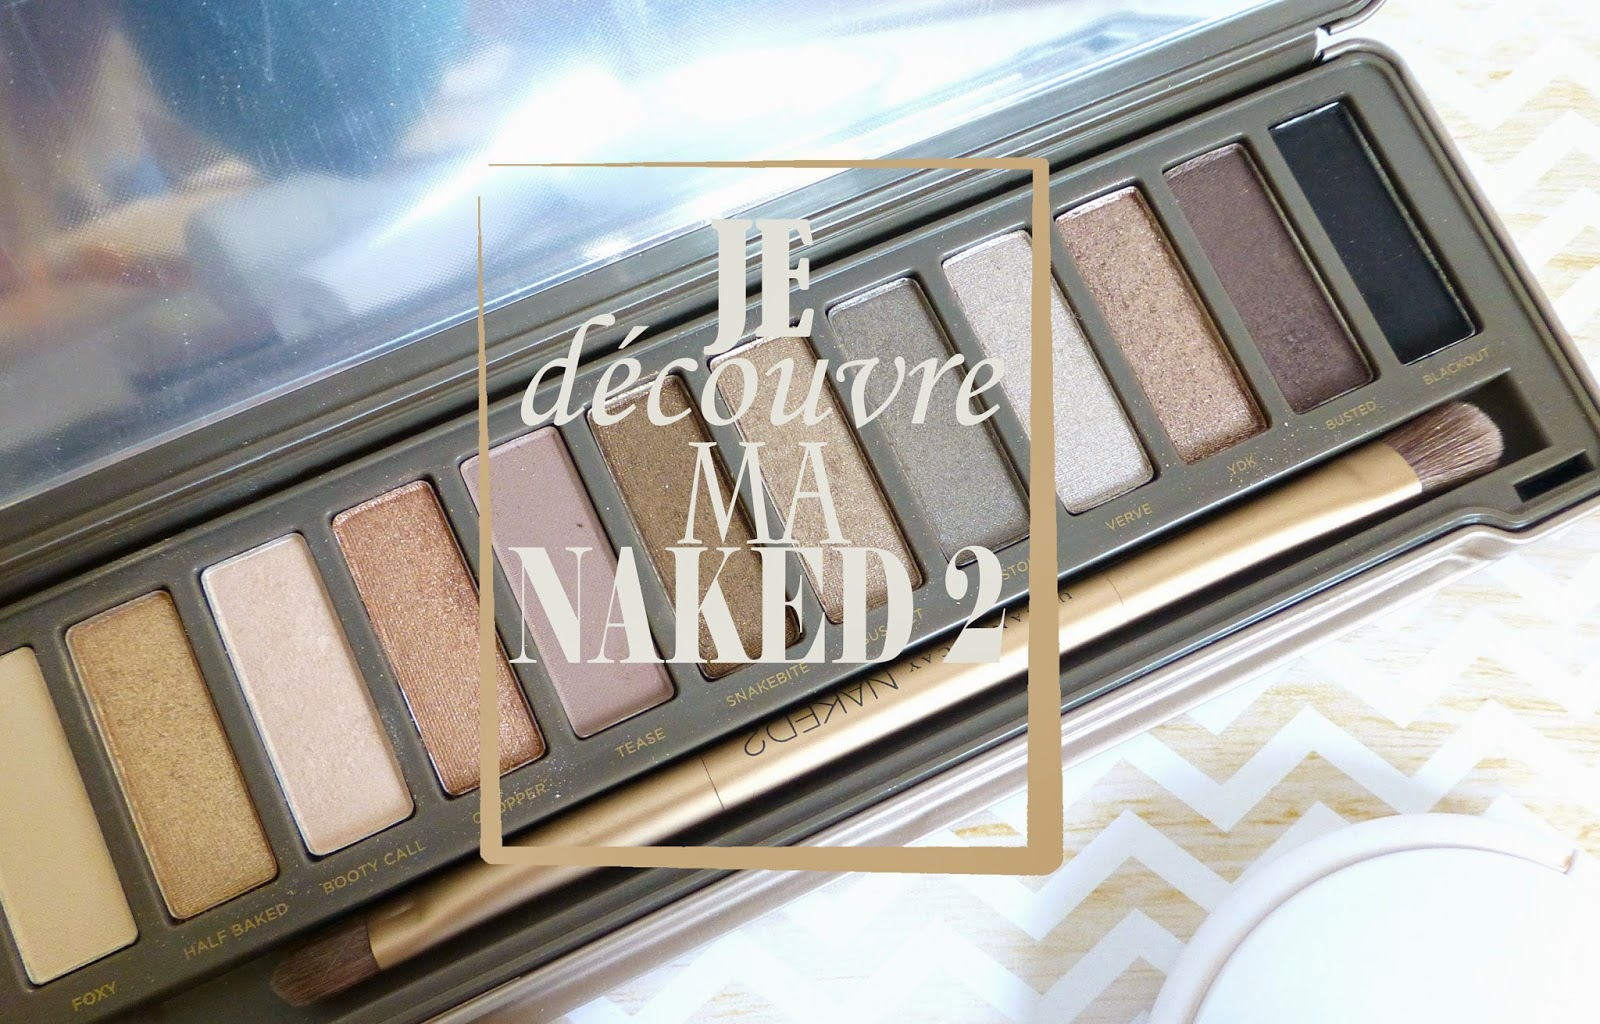 Je découvre ma NAKED 2!  essai 1 : un maquillage nude lumineux